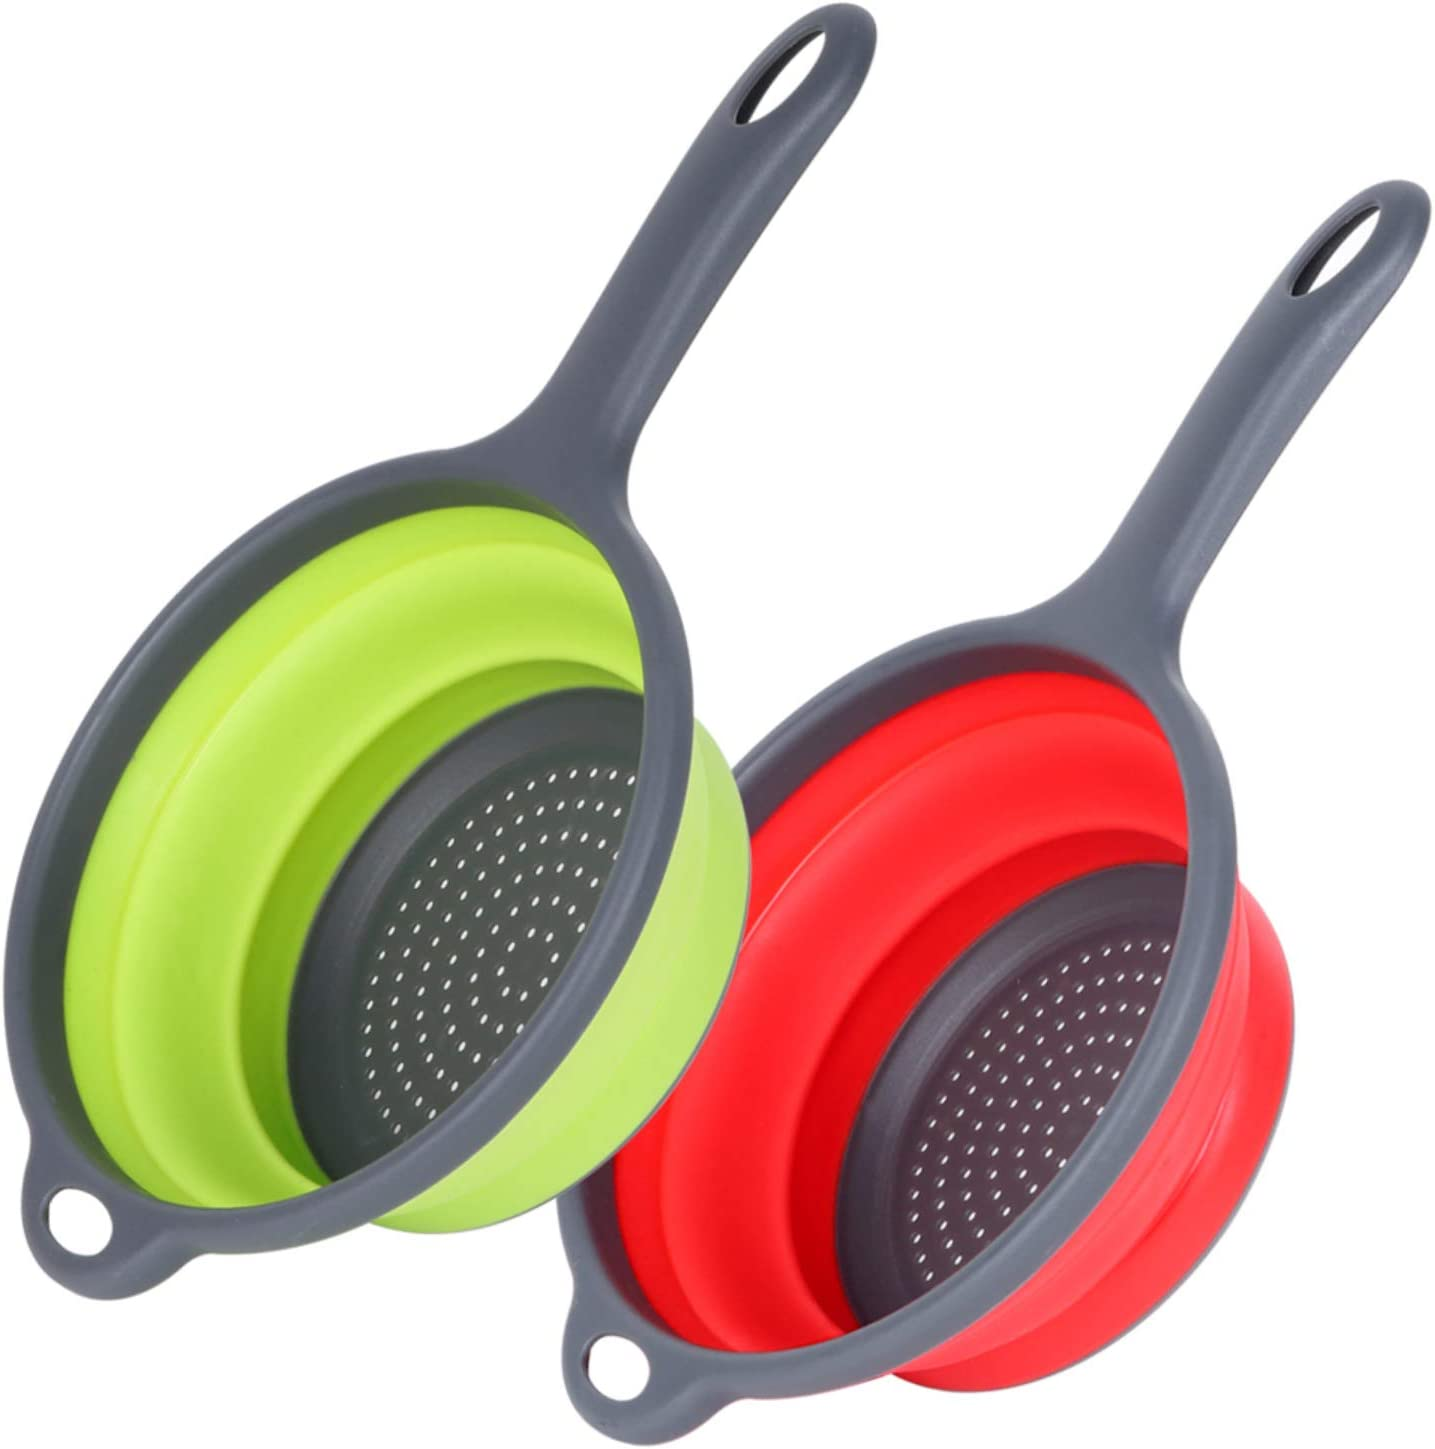 Collapsible Colander, McoMce Food-Grade Silicone Colanders, Round Kitchen Colapsable Collander with Handle, 2PCS Folding Strainer Set Perfect for Draining Pasta, Vegetable ( Green & Red )